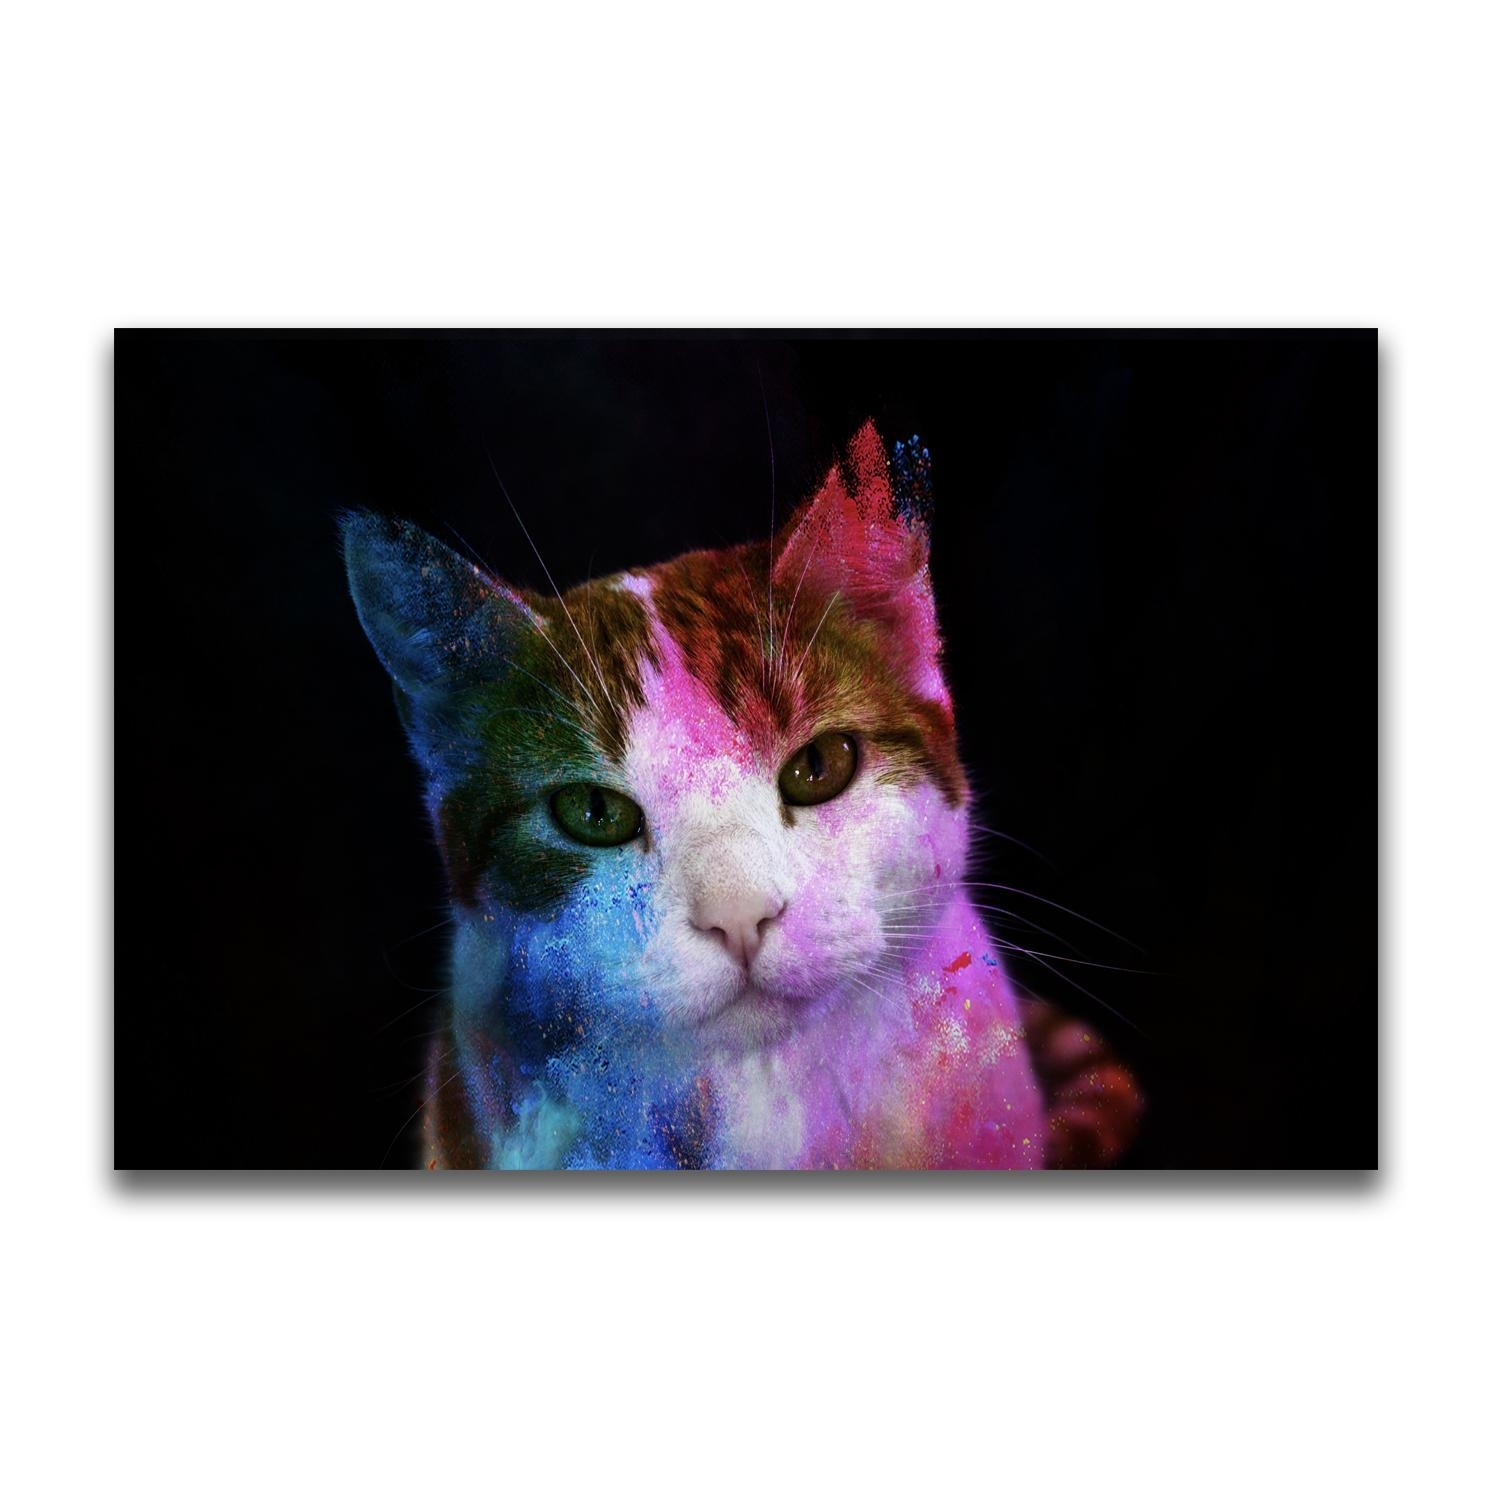 2018 Yj Art A Colorful Cat Unframed Modern Canvas Wall Art For Home In Newest Cat Canvas Wall Art (View 2 of 20)